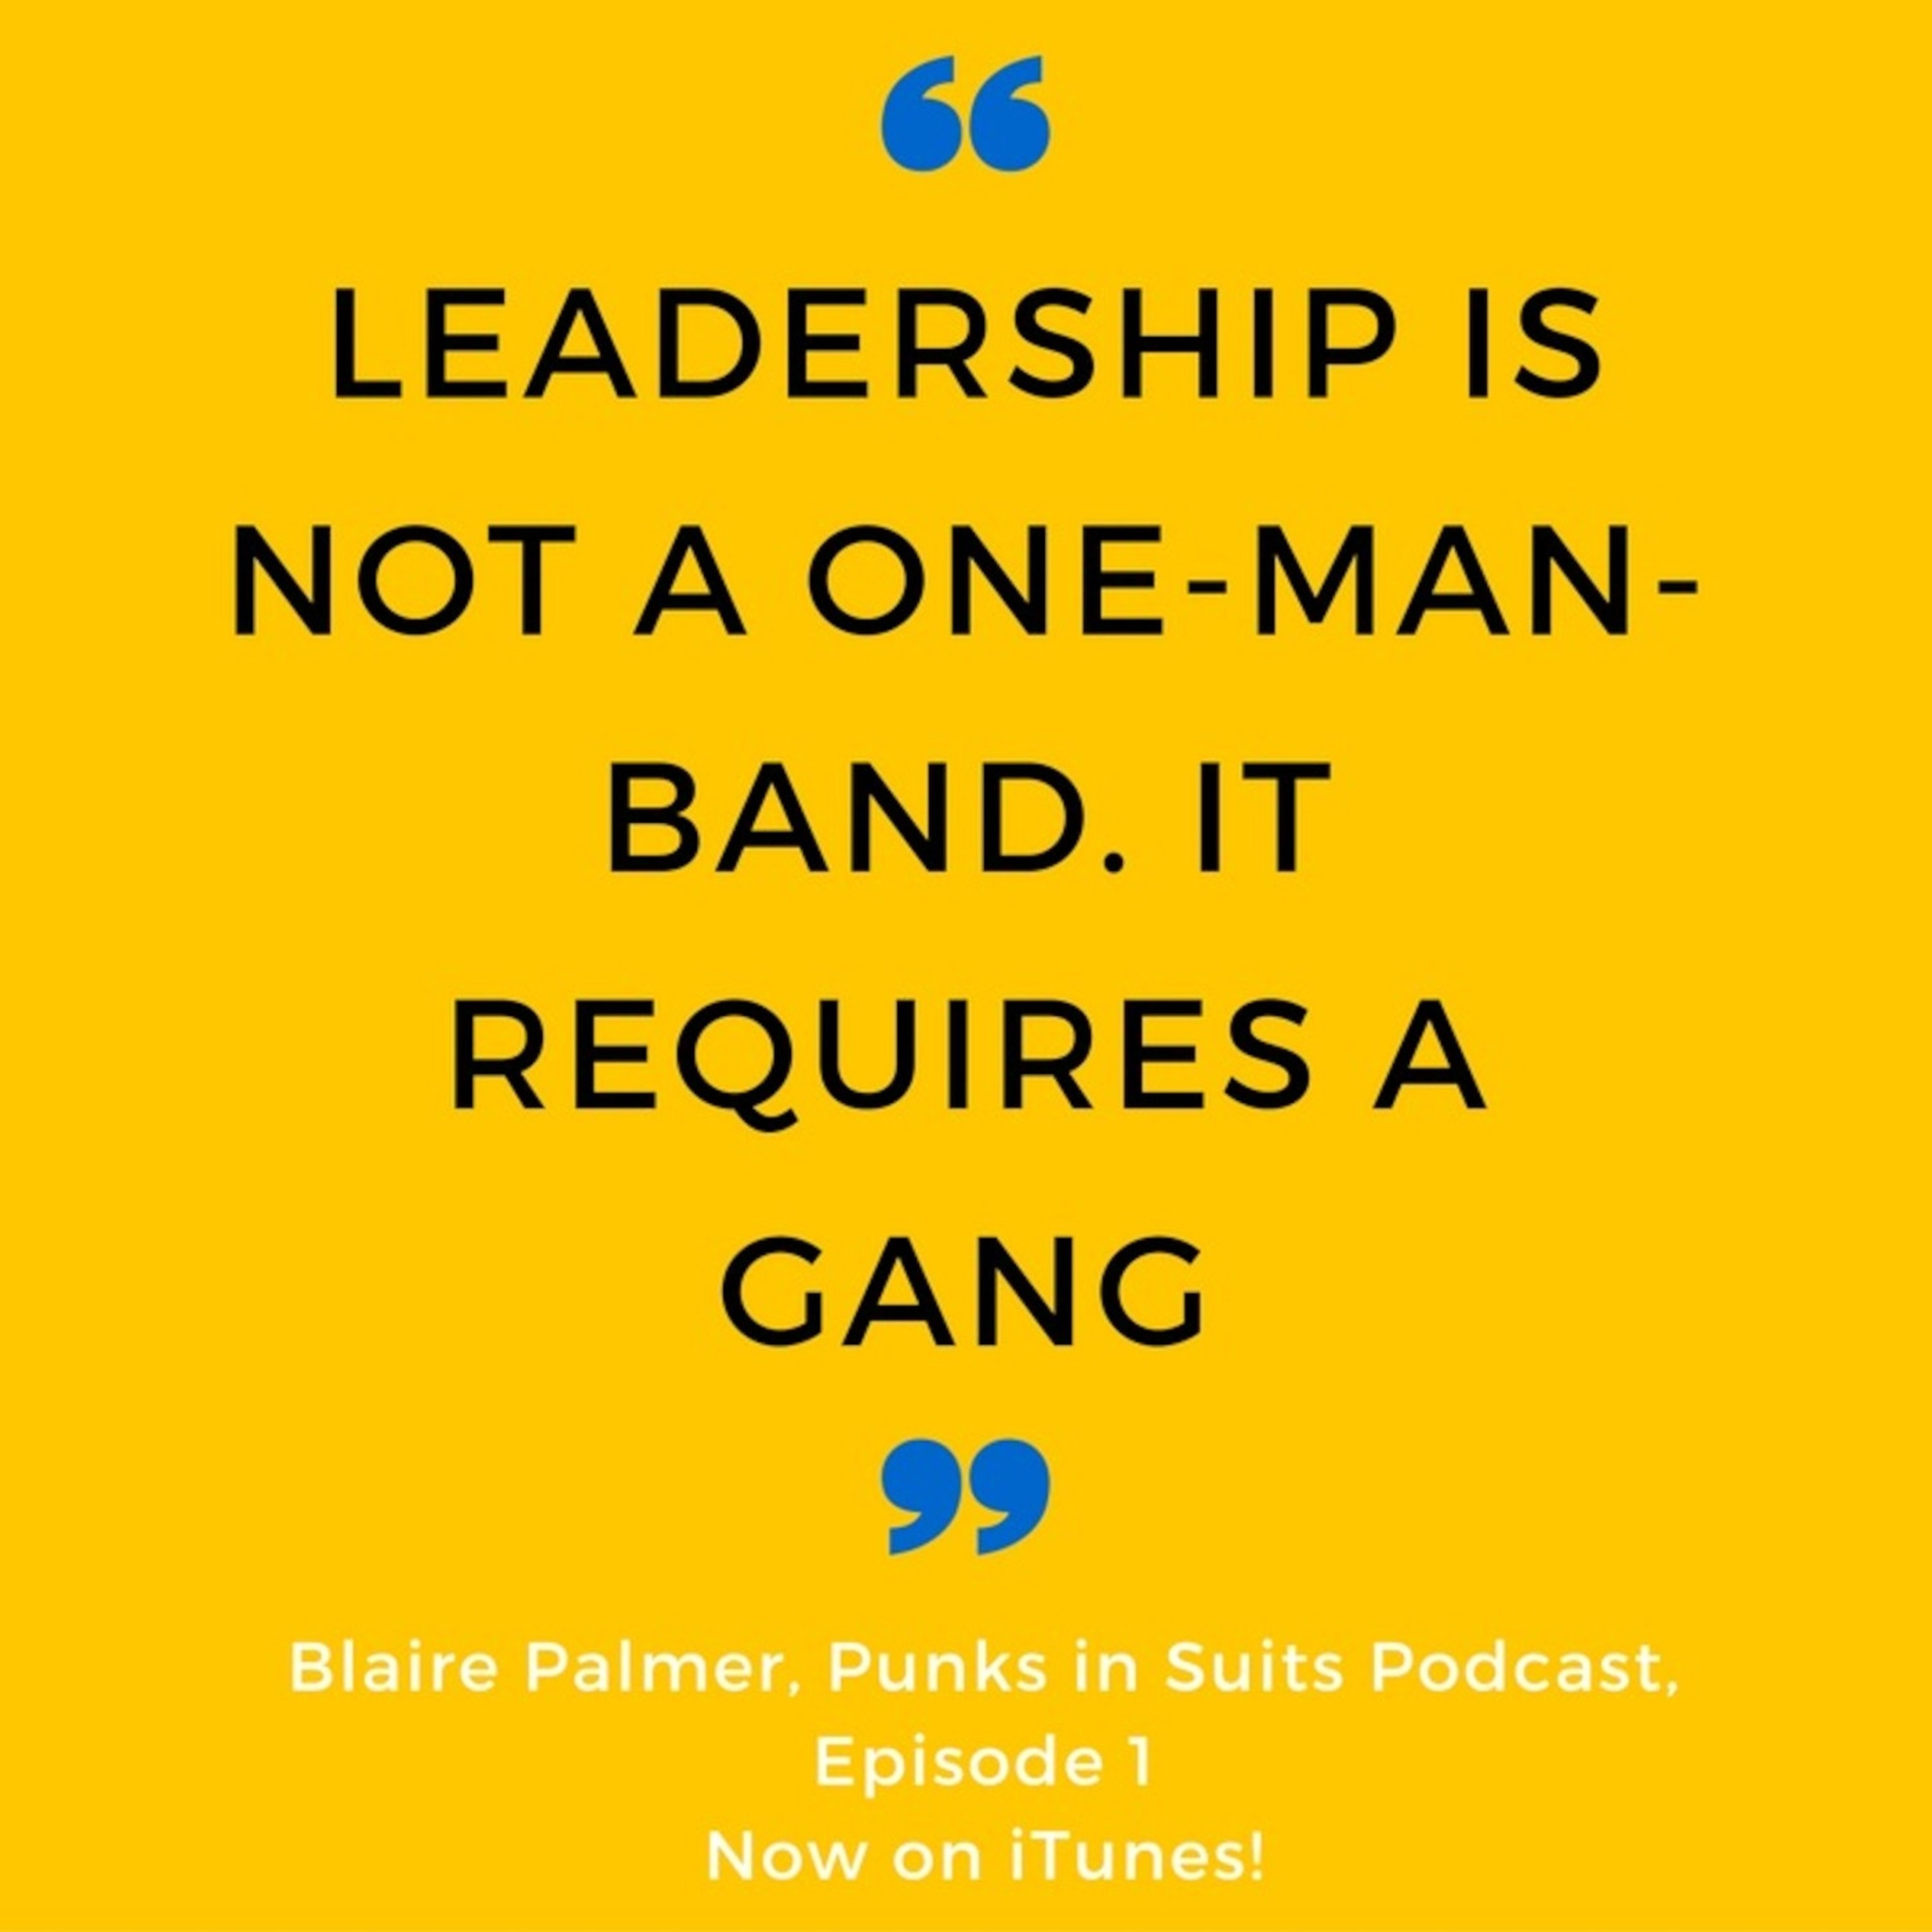 Episode 1: The Punks in Suits Podcast - Helping Leaders Work Out How to Lead in Fast Changing Times